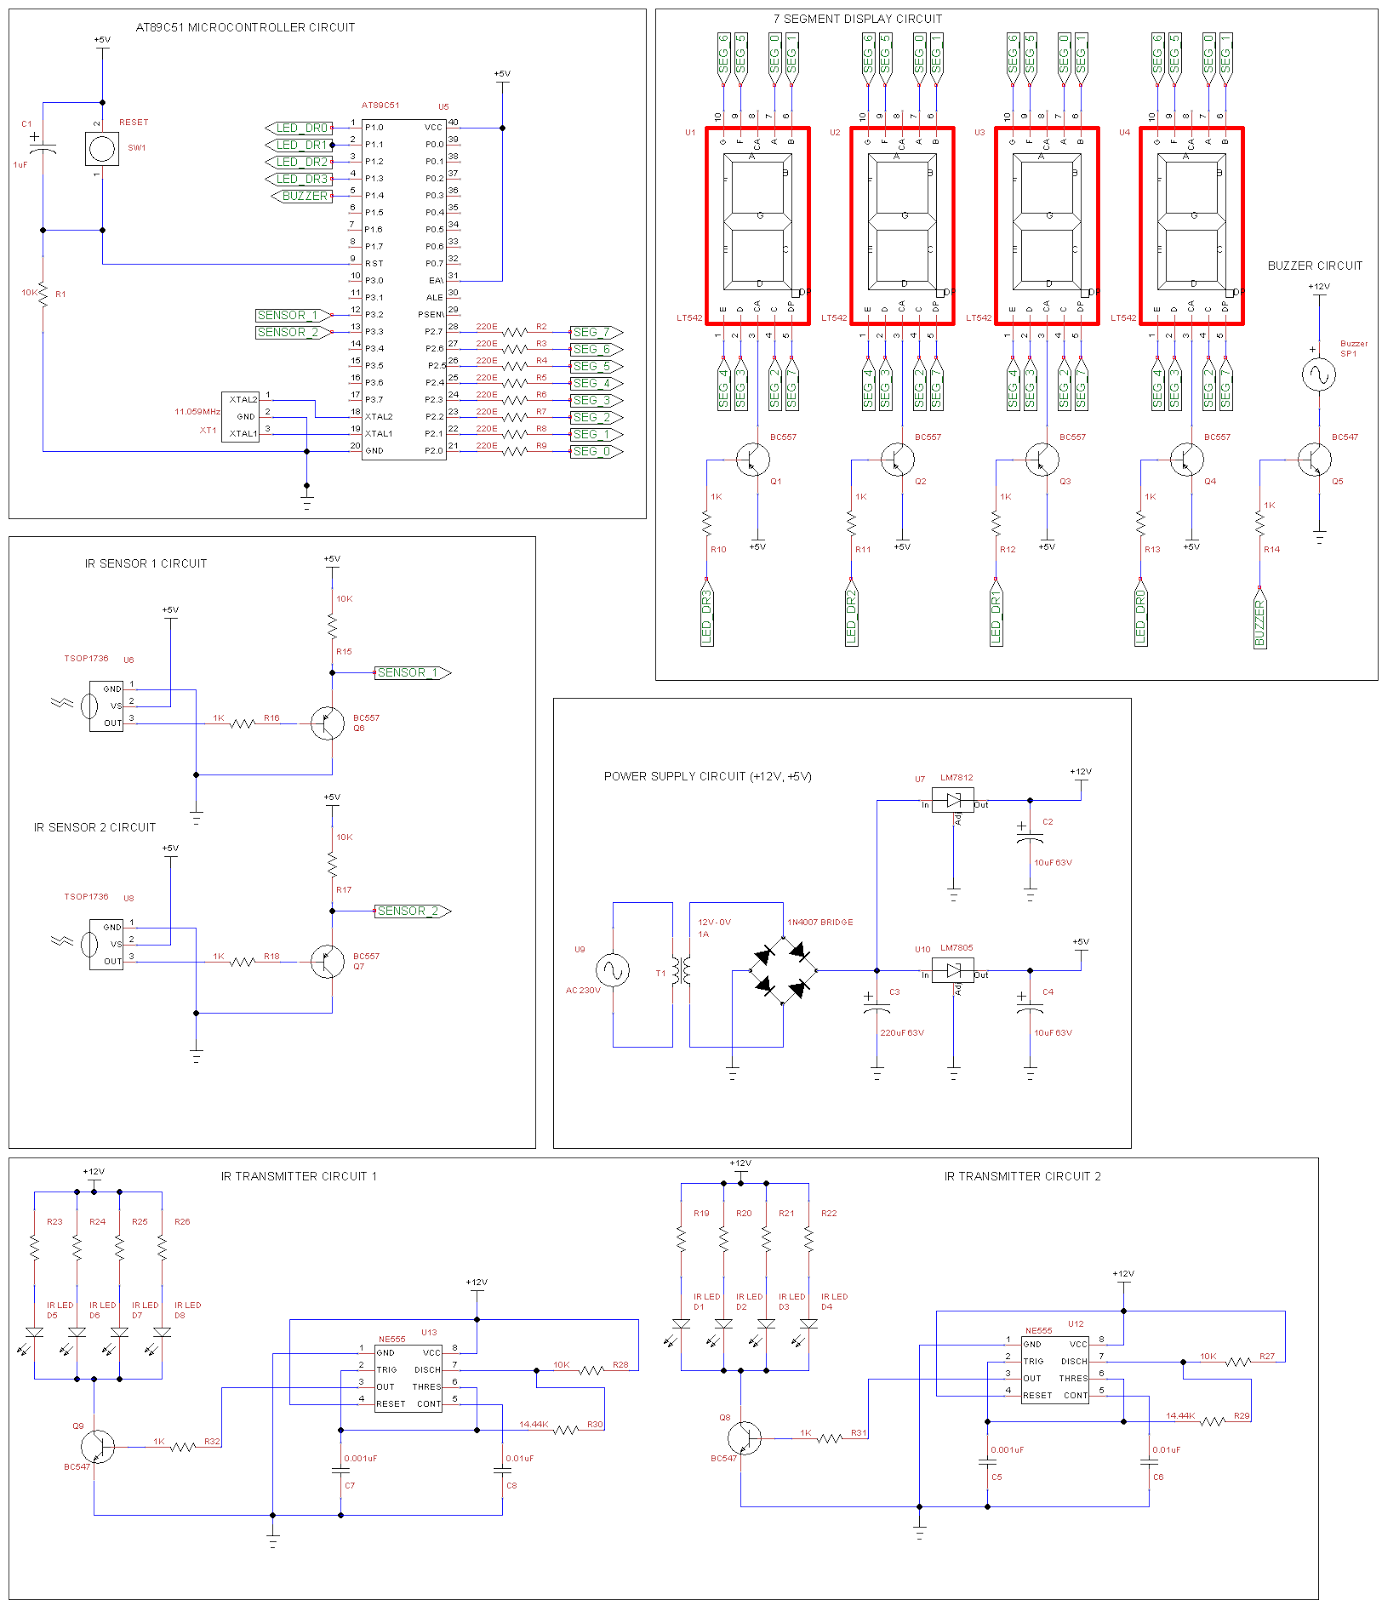 At89c51 Based Object Counter Using Ir Sensors And 4 Digit Seven Sensor Circuit Diagram 7 Segment Display Buzzer 3